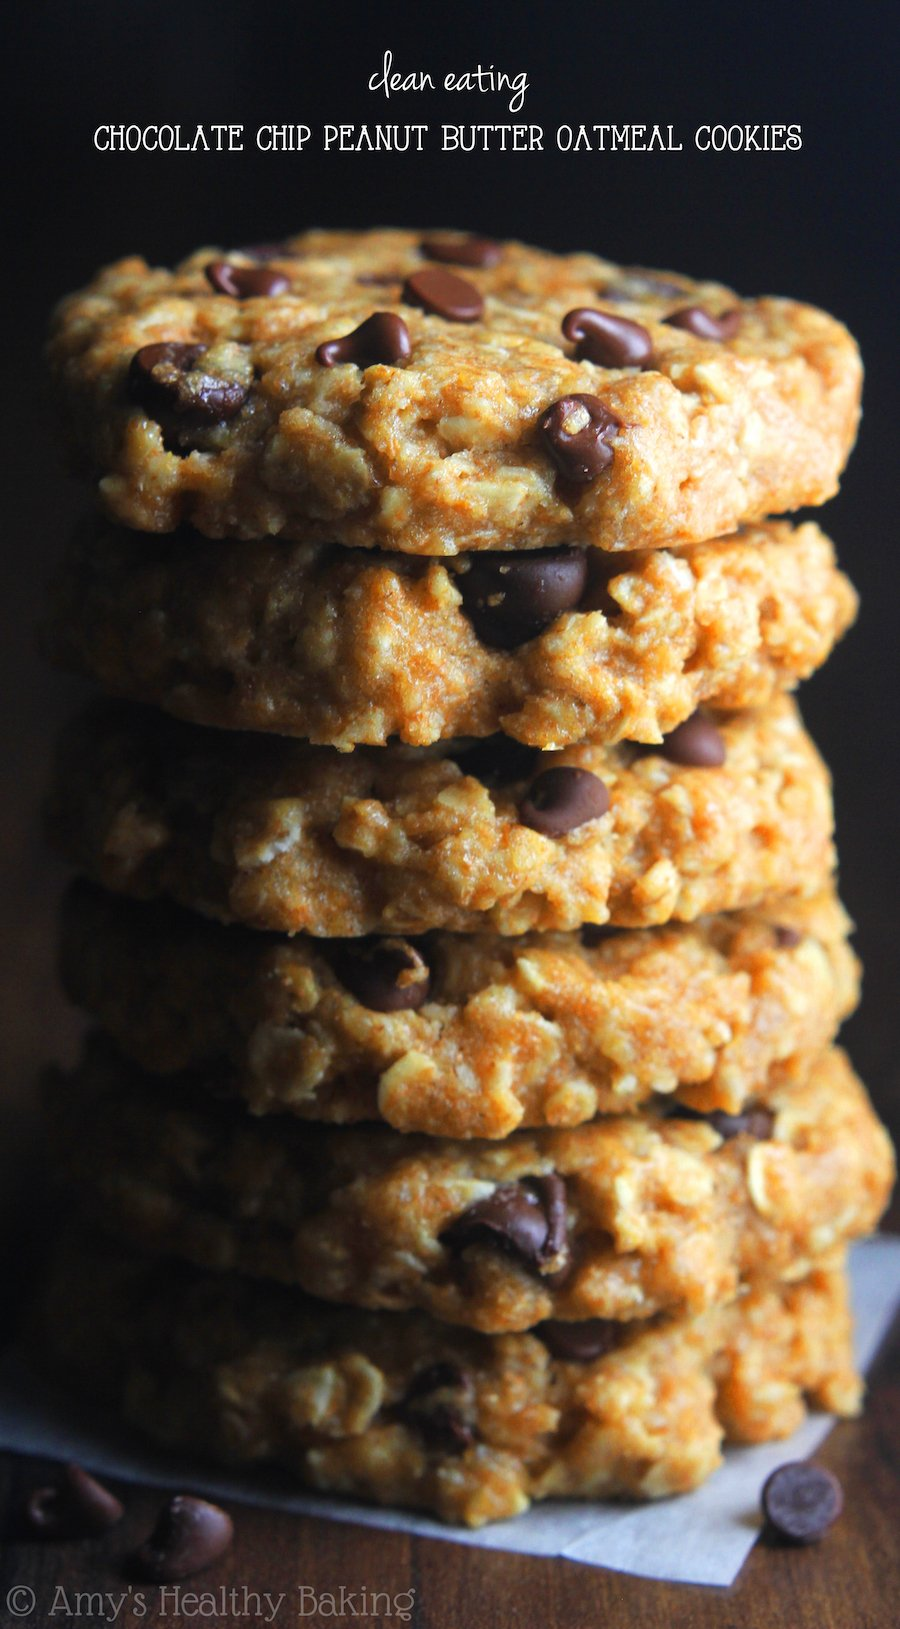 Chocolate chip peanut butter oatmeal cookies recipe video amys clean eating chocolate chip peanut butter oatmeal cookies these skinny cookies don forumfinder